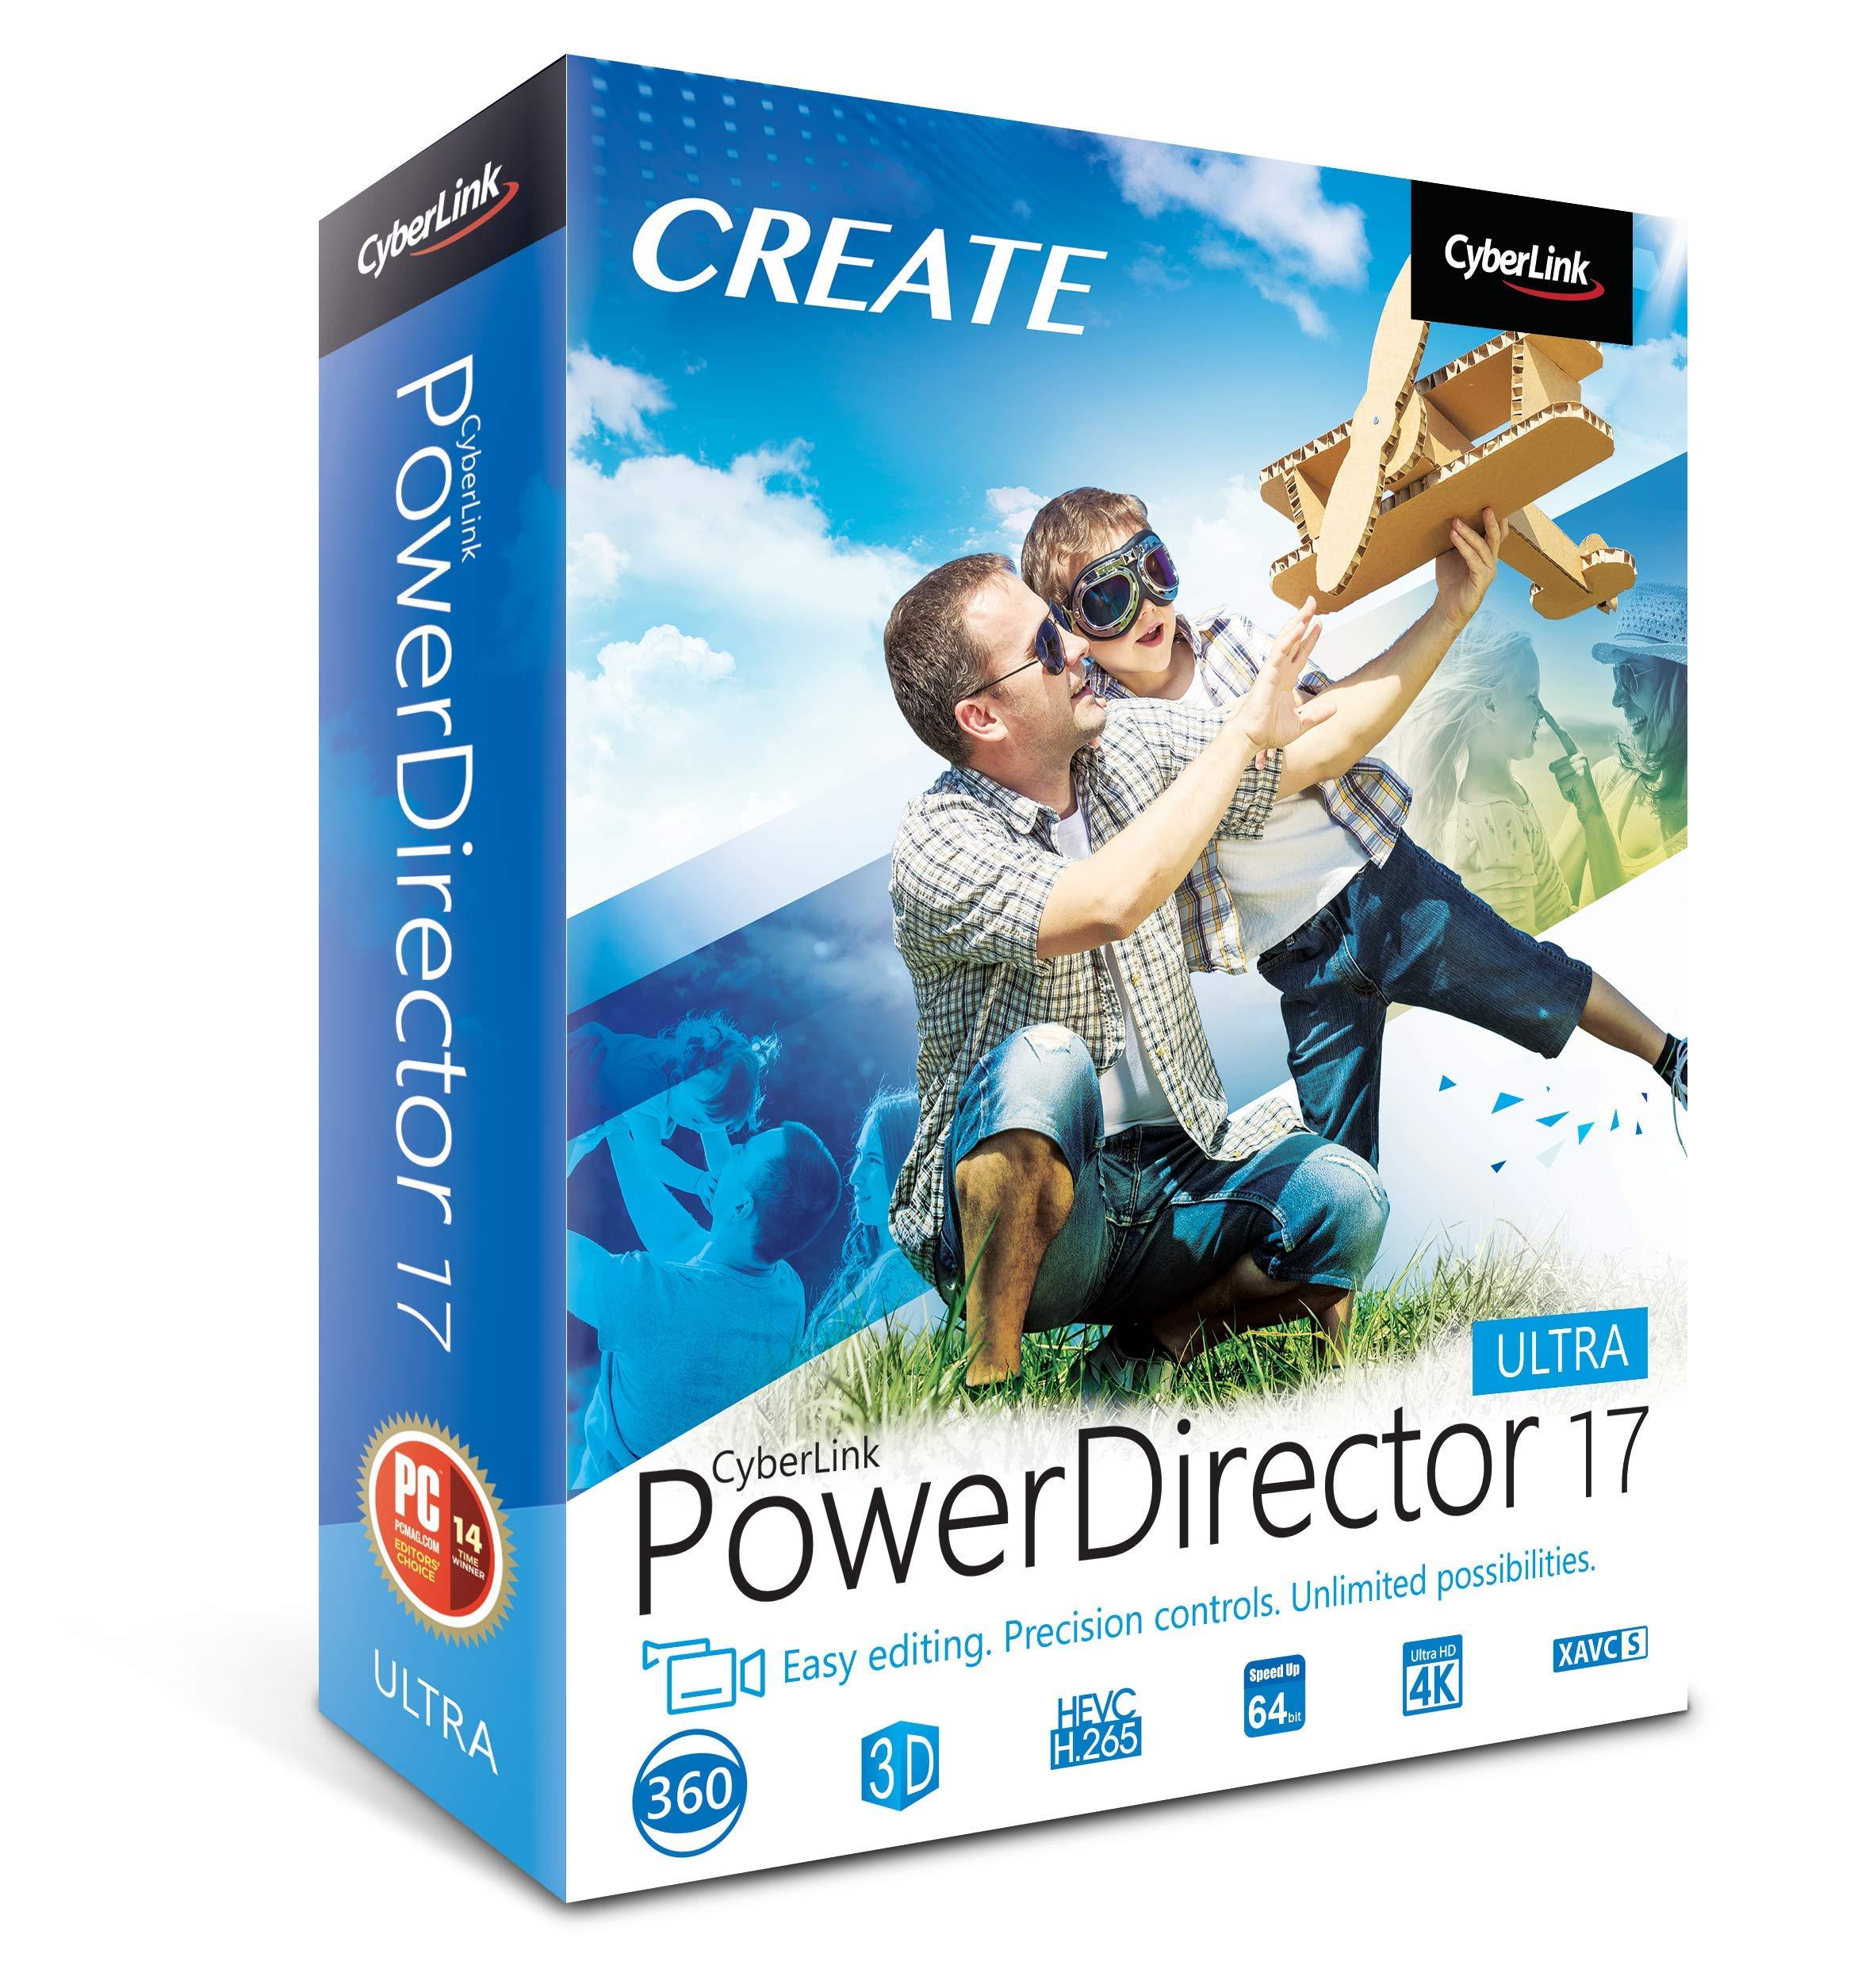 Cyberlink PowerDirector 17 Ultra by Cyberlink